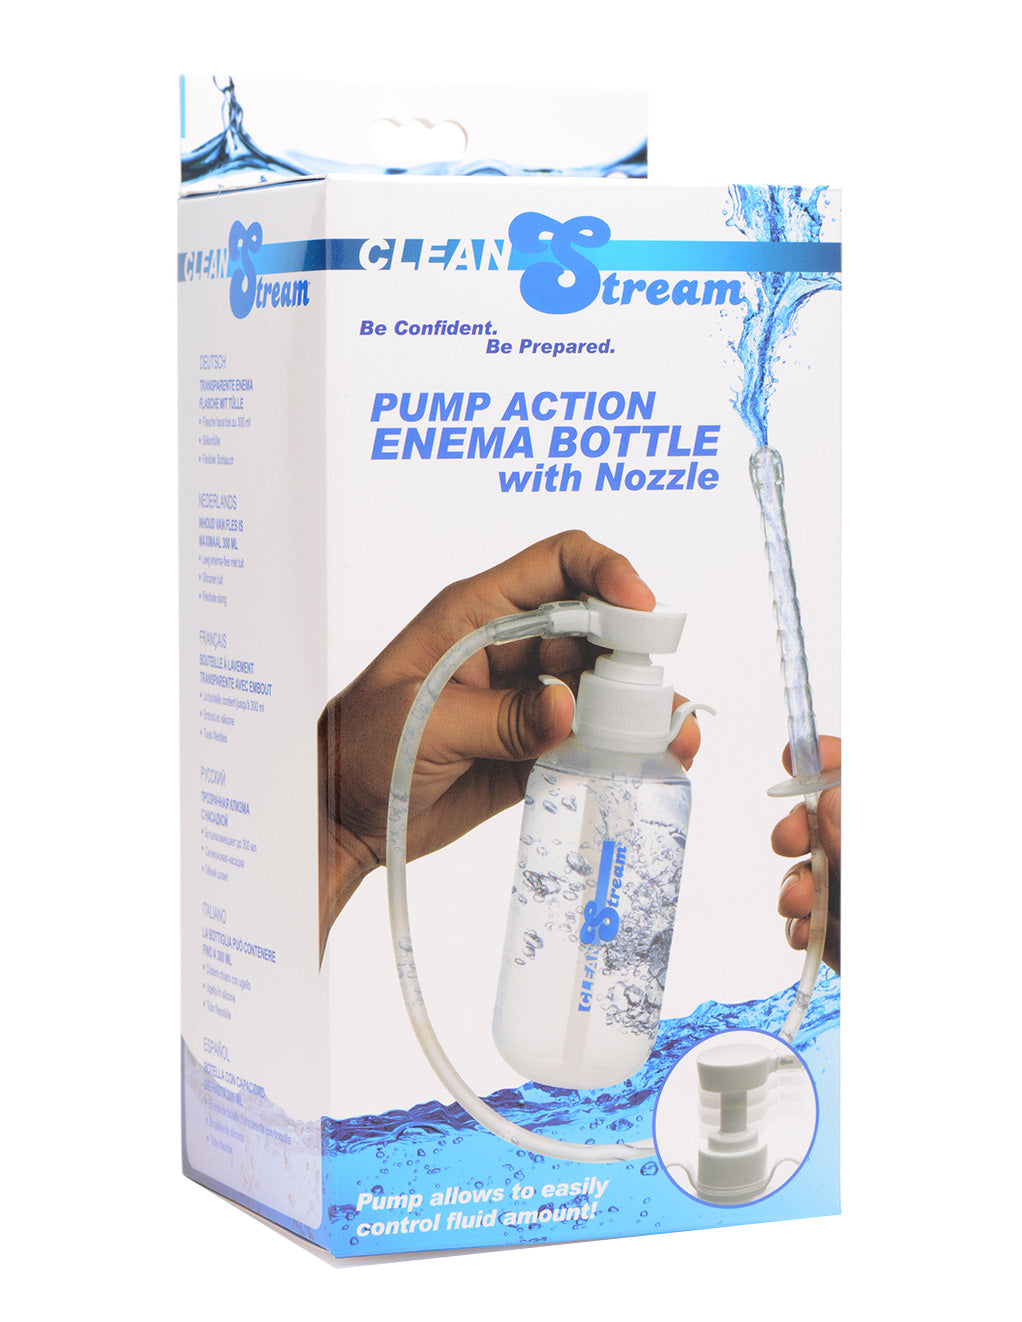 Clean Stream Pump Action Enema Bottle With Nozzle Box Front